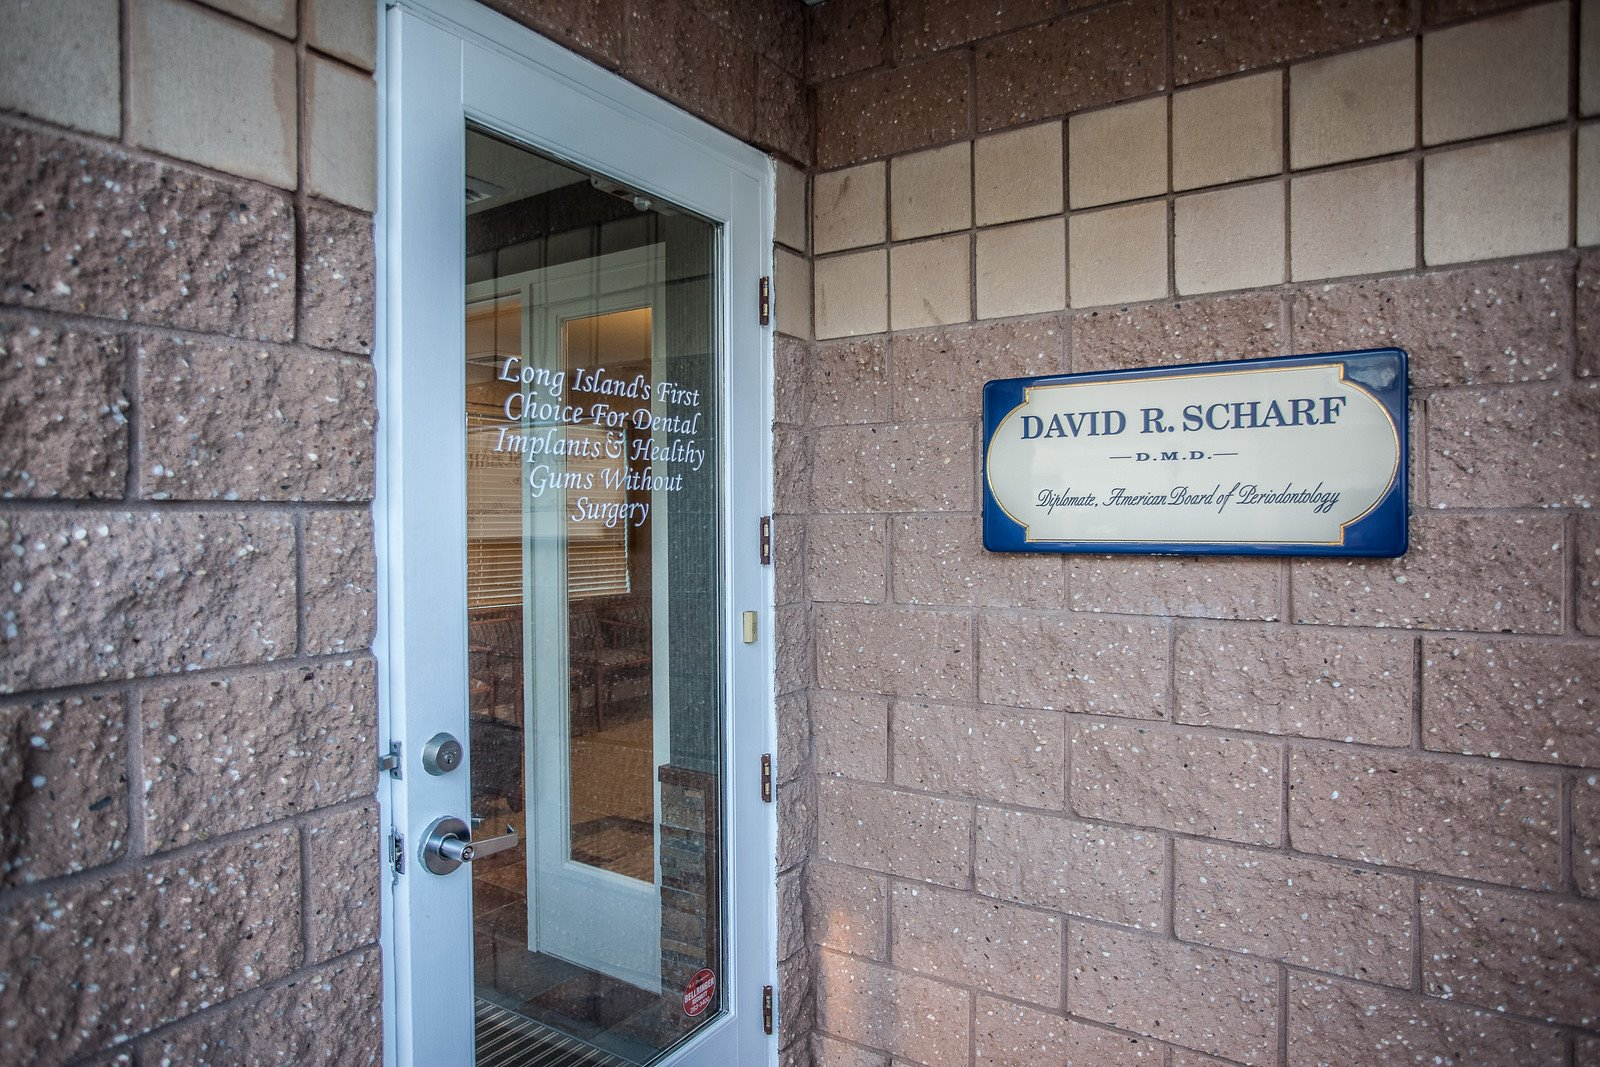 Dr. David Scharf reviews | Periodontists at 98 East Main Street - Babylon NY